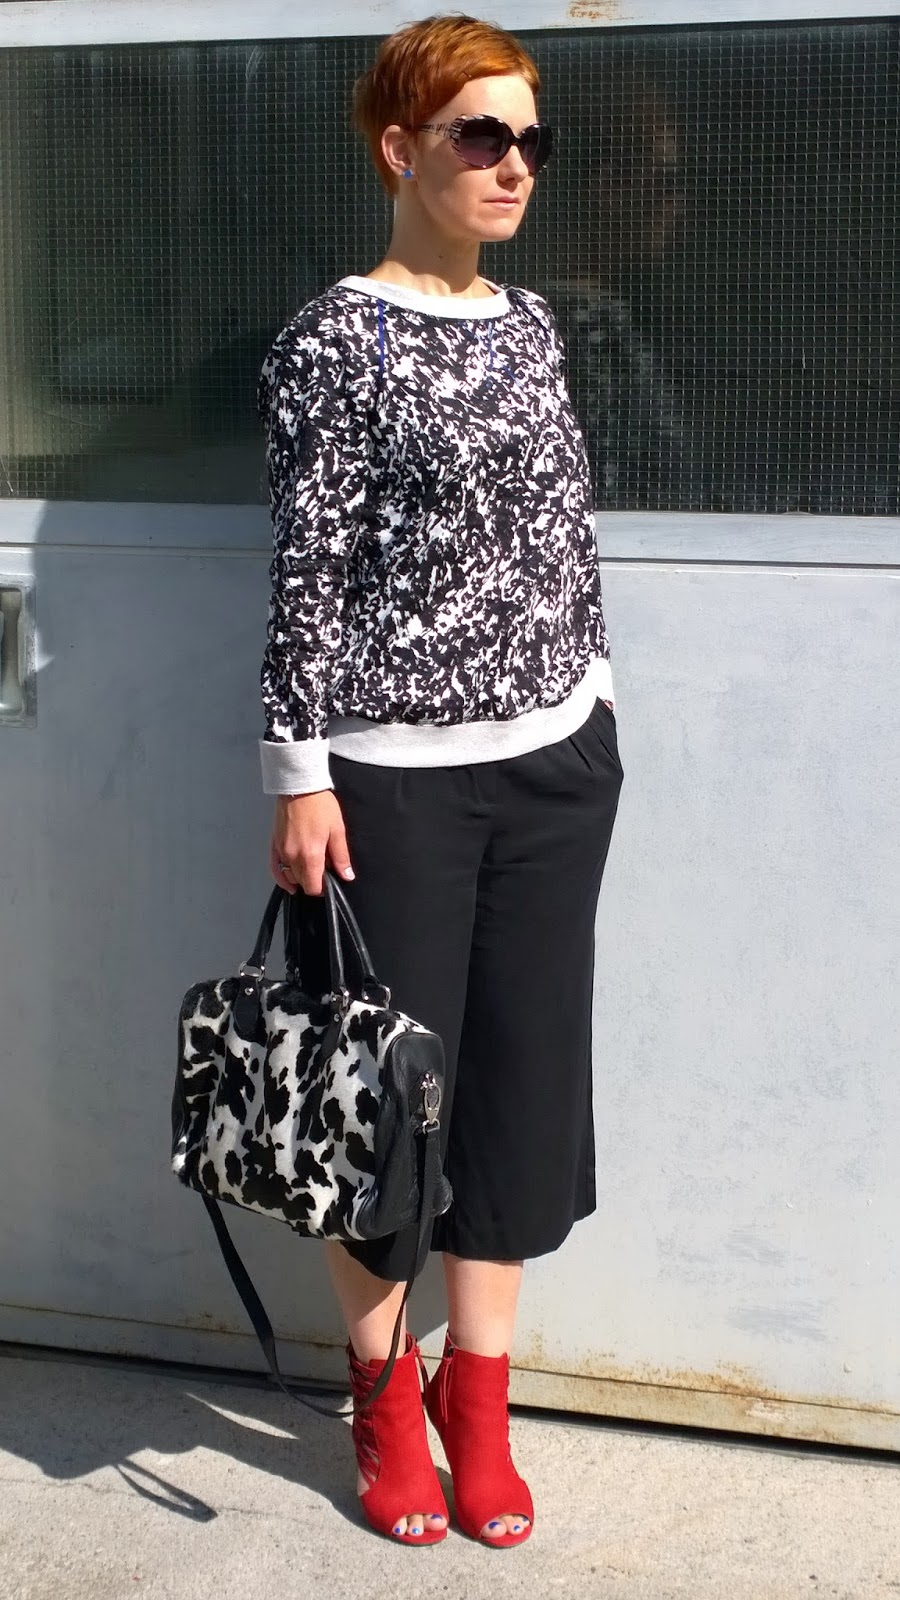 cow print bag, black and white splash pattern sweater, zebra sunglasses, red open toe booties, culottes